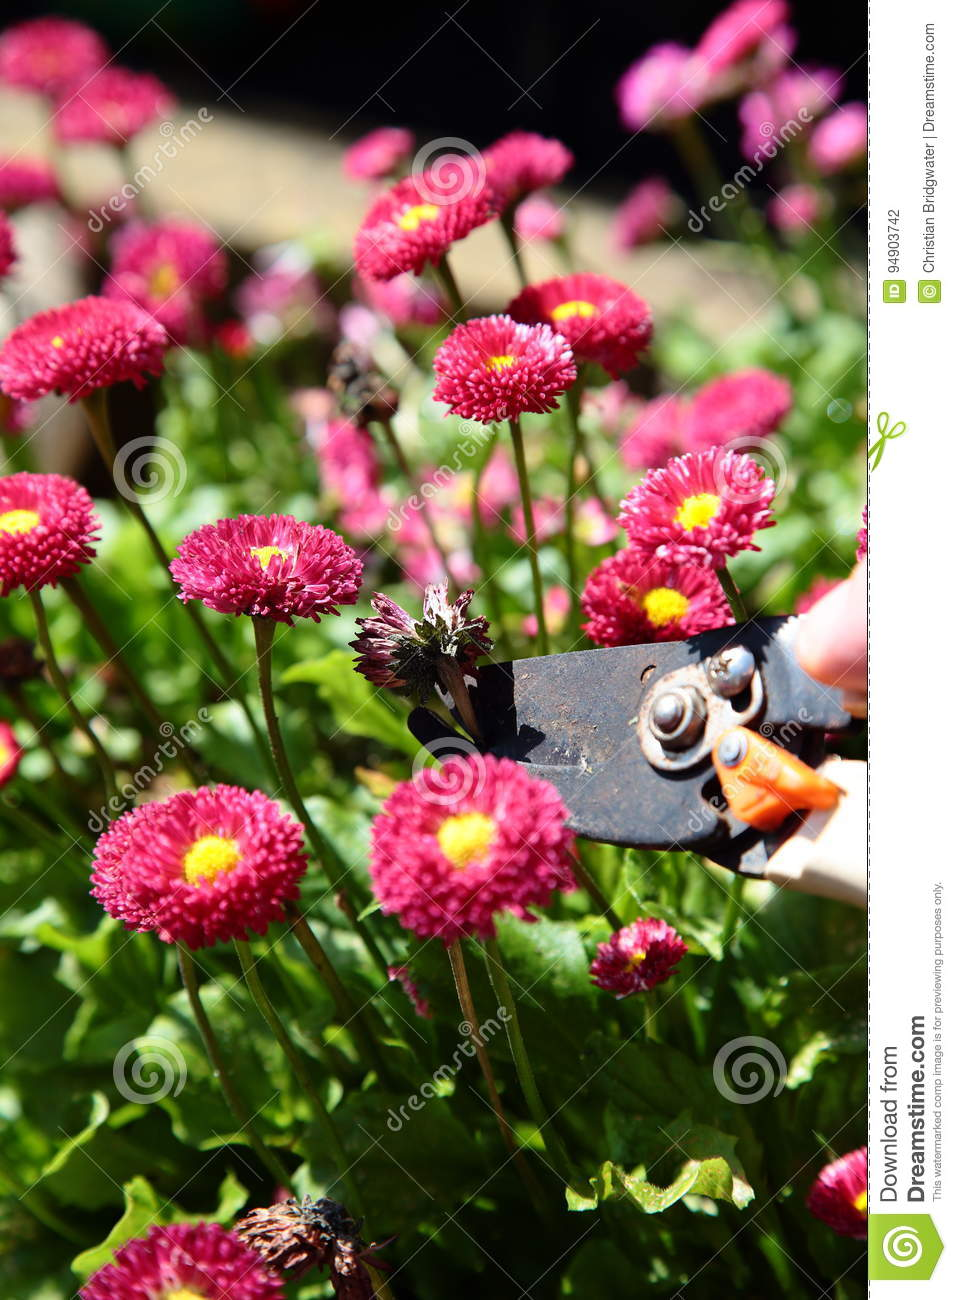 Cutting dead heading bellis perennis rose red double daisy stock royalty free stock photo izmirmasajfo Image collections